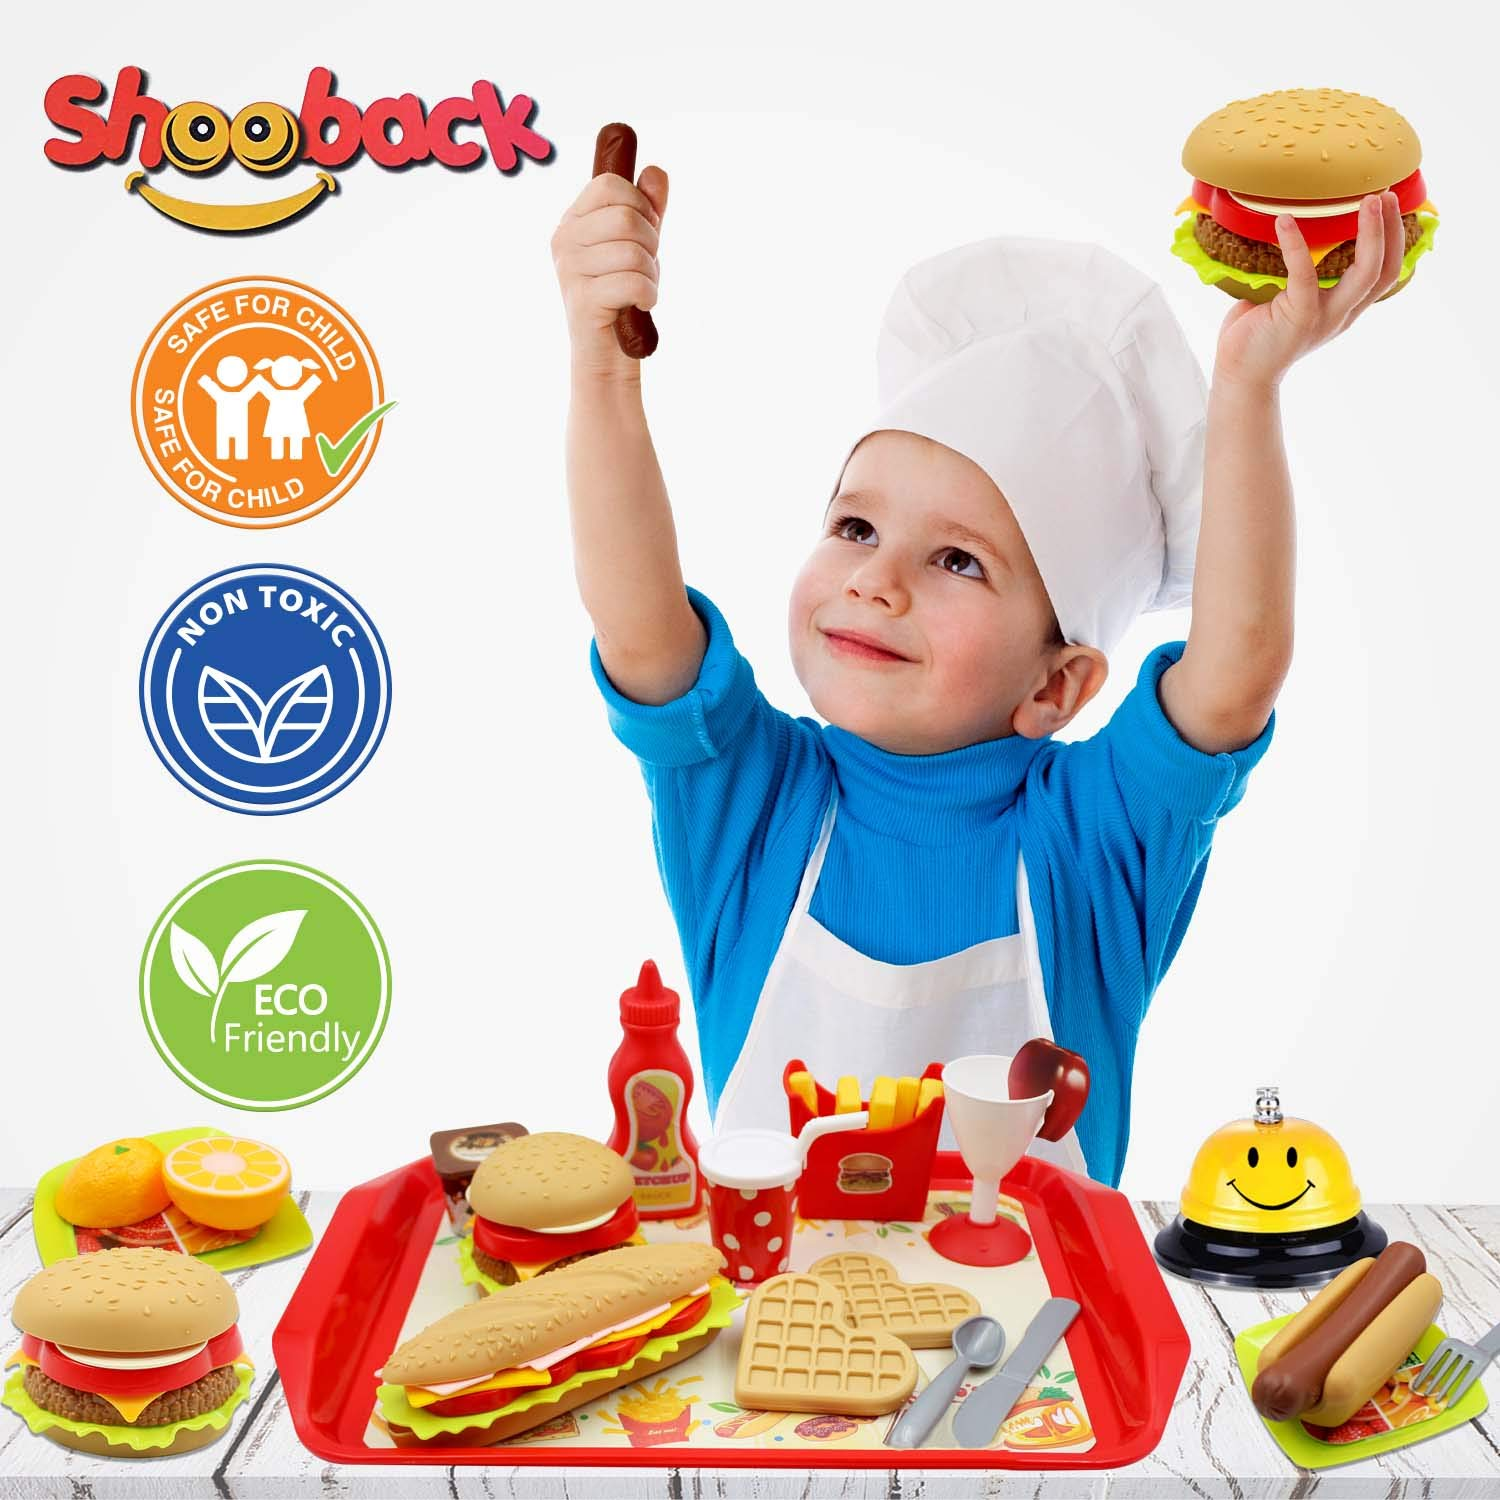 Shooback Play Kitchen Accessories, Pretend Kitchen Sets Kids Play Food, Children Toy Food Play, Fake Food for 3,4,5,6,7,8 Year Old and Up, Gift Game for Girls, Kids, Toddlers with Smile Dinner Bell